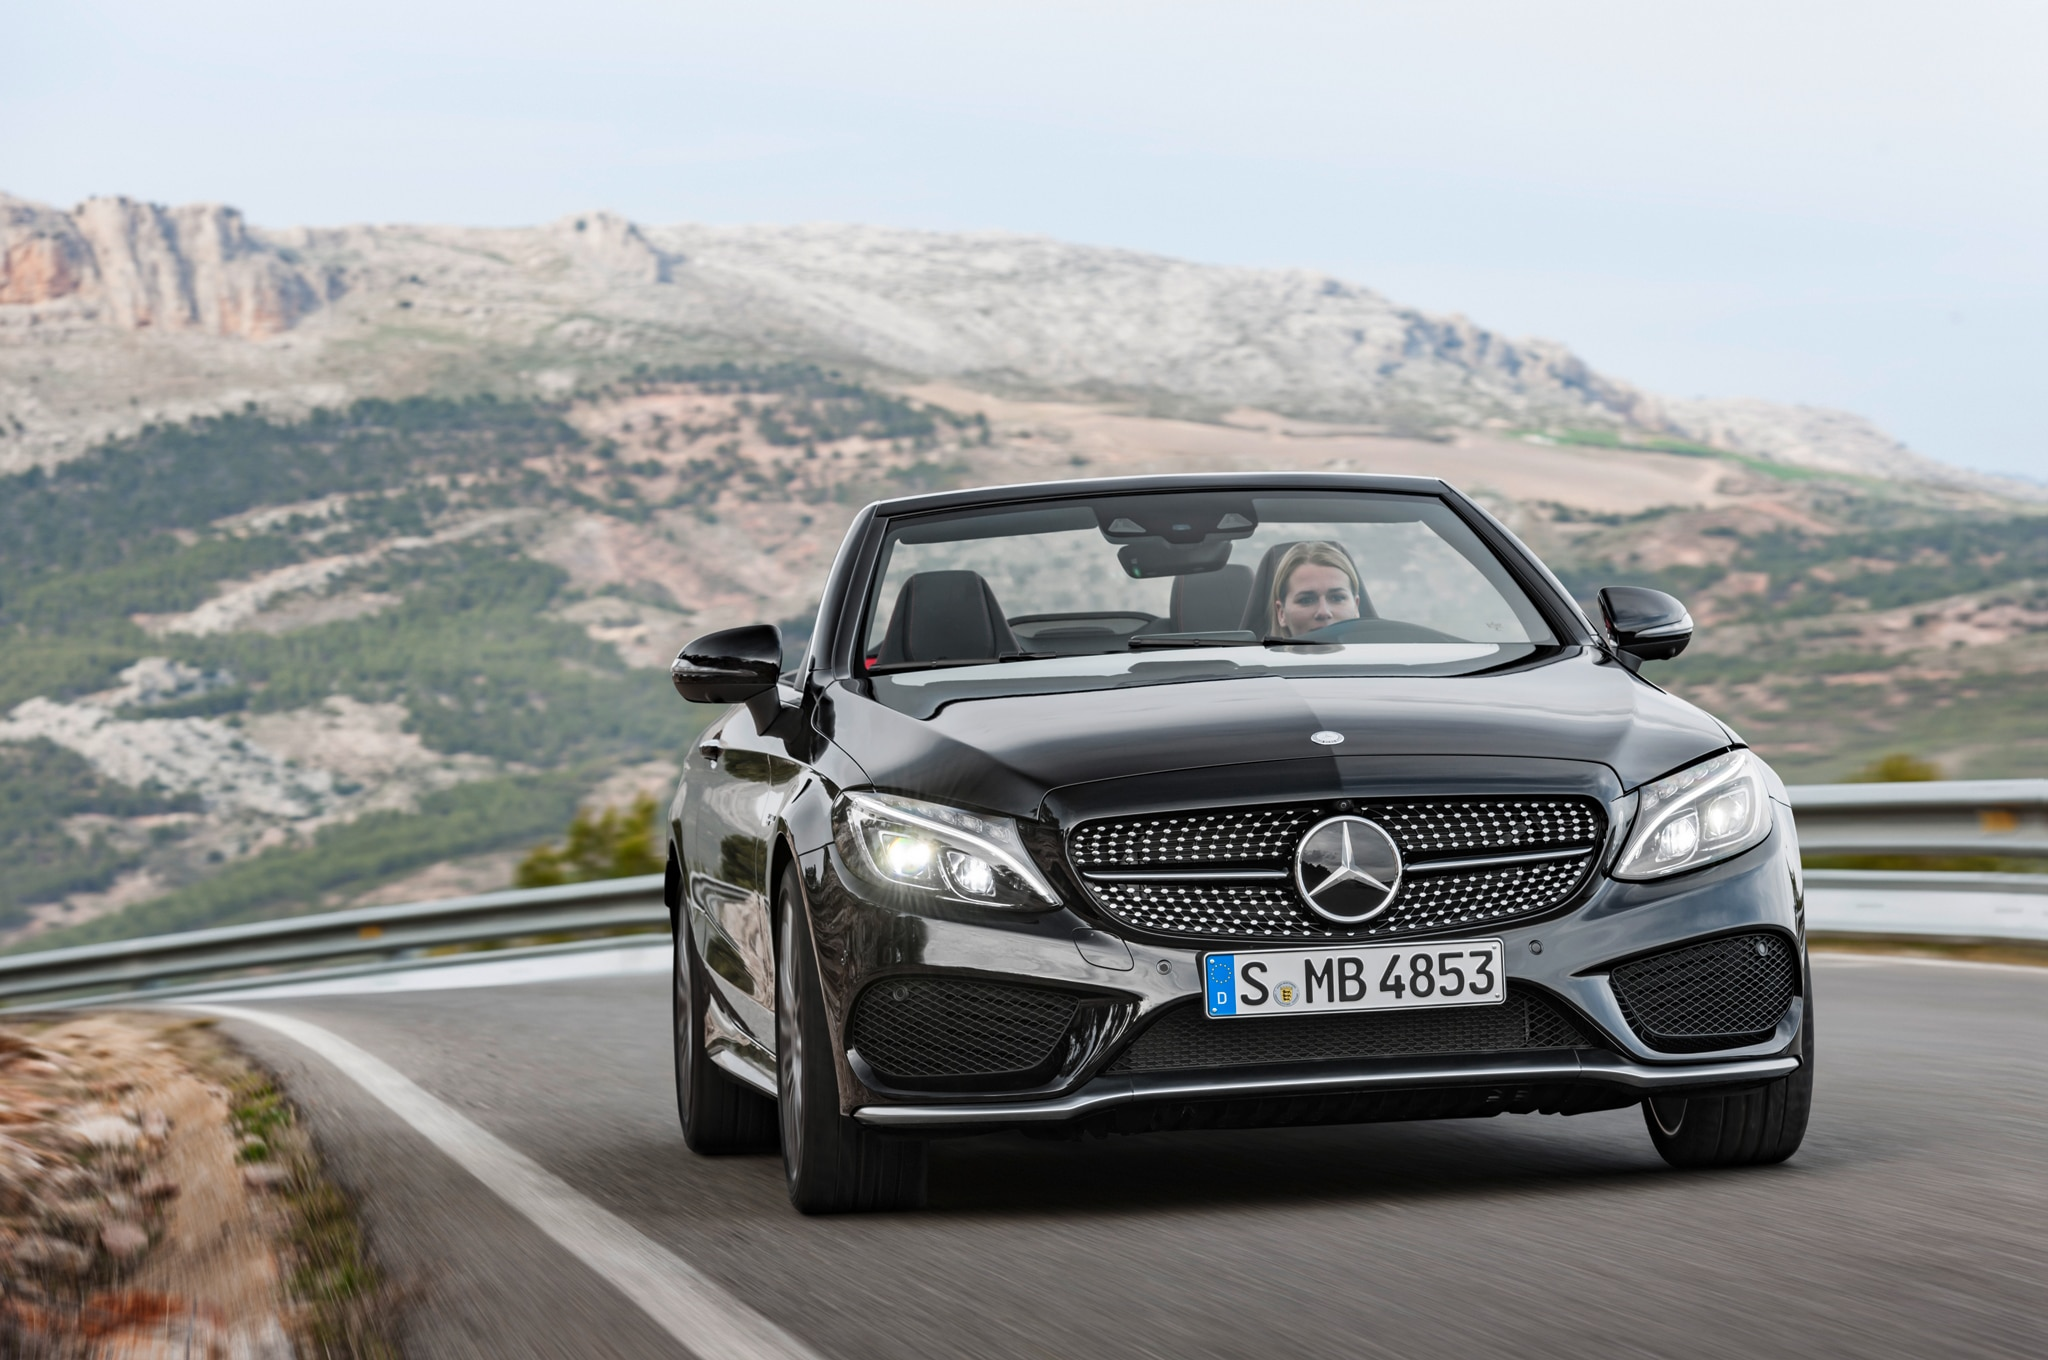 2017 Mercedes-Benz C-Class Cabriolet Revealed in C300, AMG